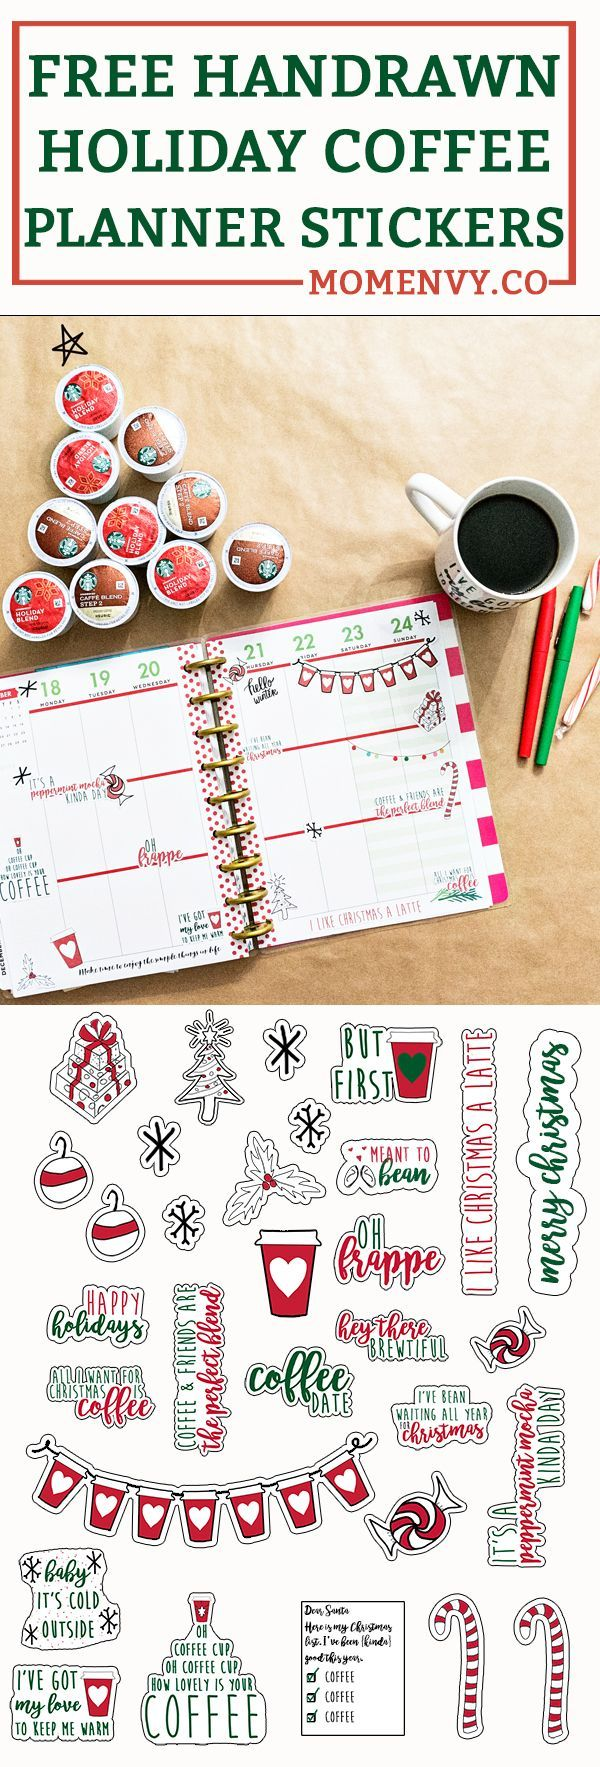 Downloaded KB!! #ad Adorable free Christmas Coffee planner stickers and die-cuts that pair perfectly with Starbucks®️️ k-cups and coffee. Free planner stickers for the Happy Planner, Erin Condren, Recollections, TN's, and more! Free SVG, Silhouette, JPEG, and PNG files included. They come in two sizes (the larger set is perfect for die-cuts!) #starbucks #freebies #christmas #plannerstickers #SavorHolidayFlavors #happyplanner #erincondren